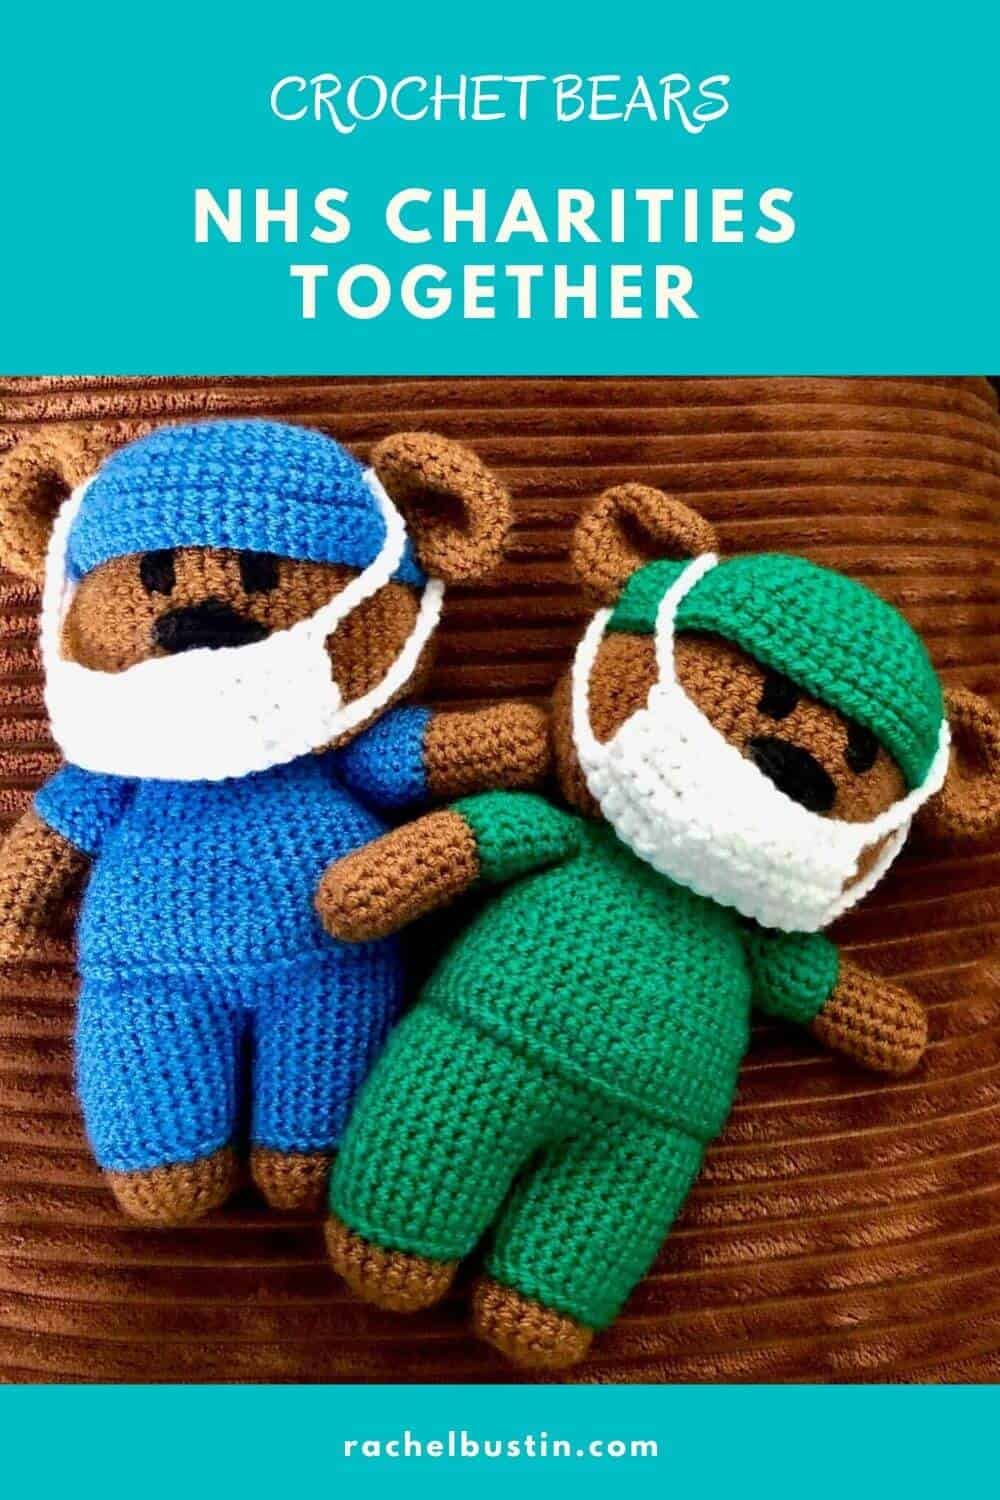 Crochet Bears - Doctor and Nurse - for NHS Charity #crochet #crocheting #woolbears #crochetbears